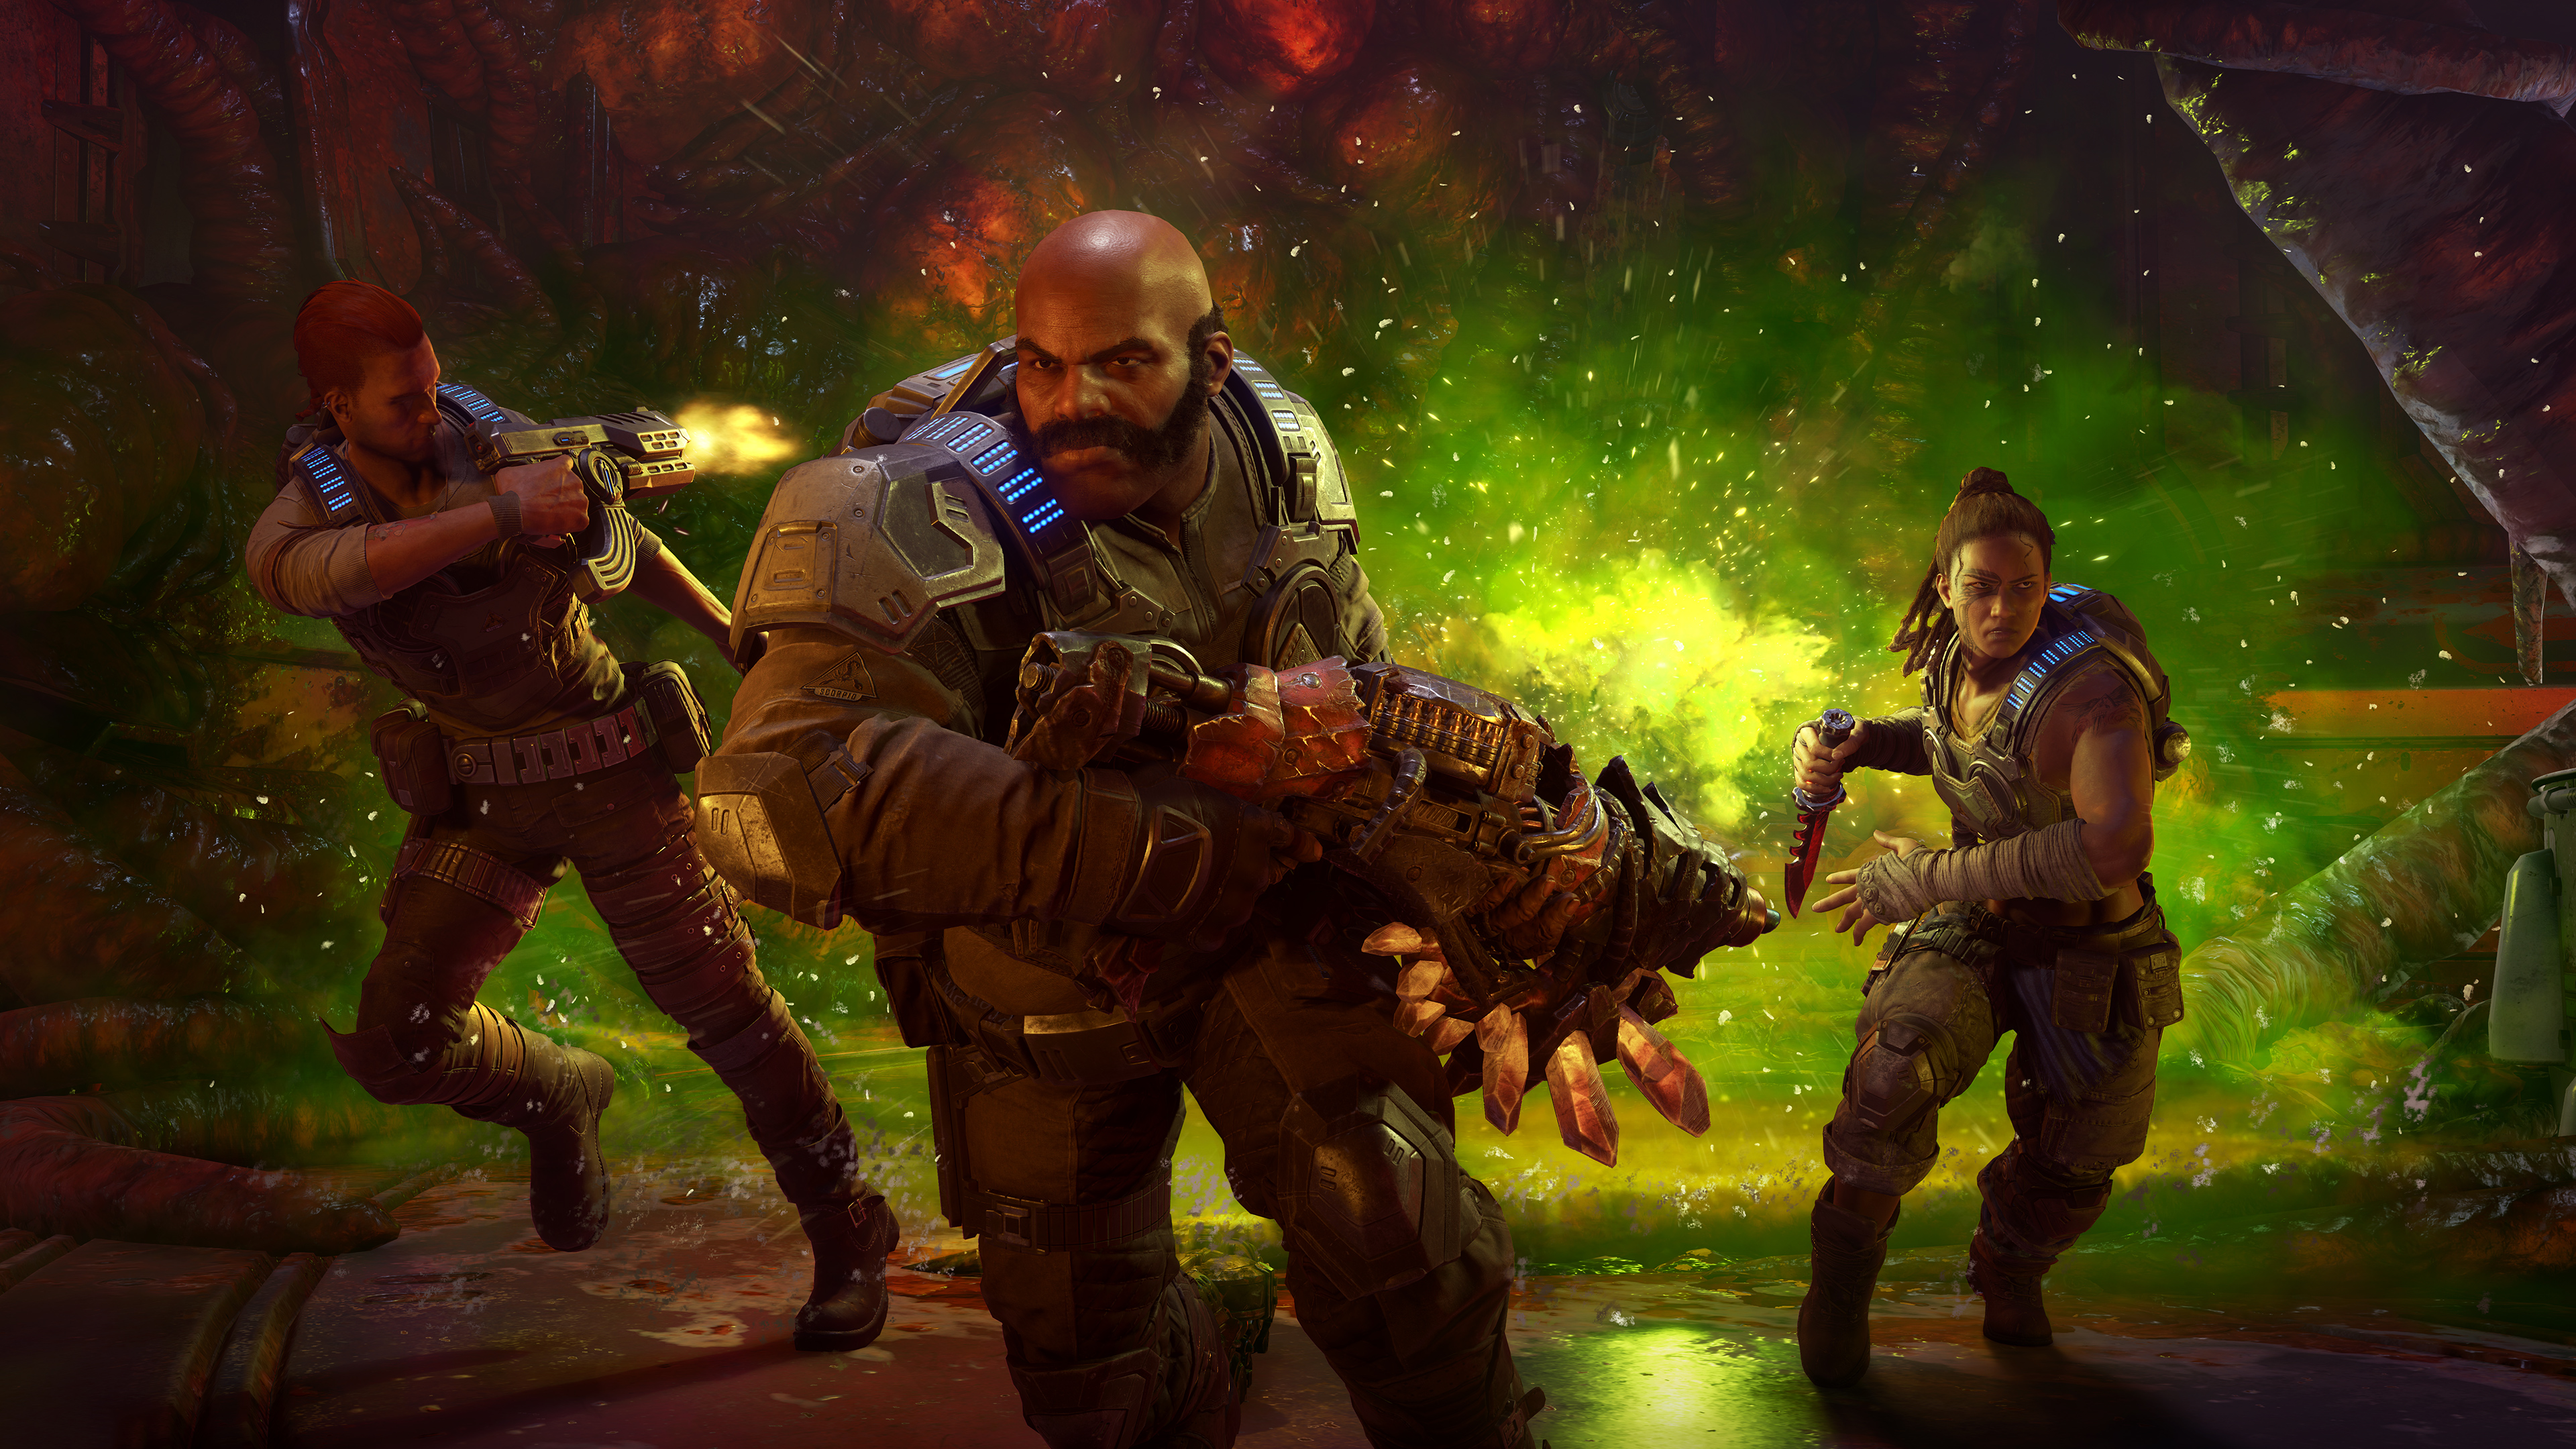 Gears Of War 5 Game Wallpaper 4k Ultra Hd Id 4999